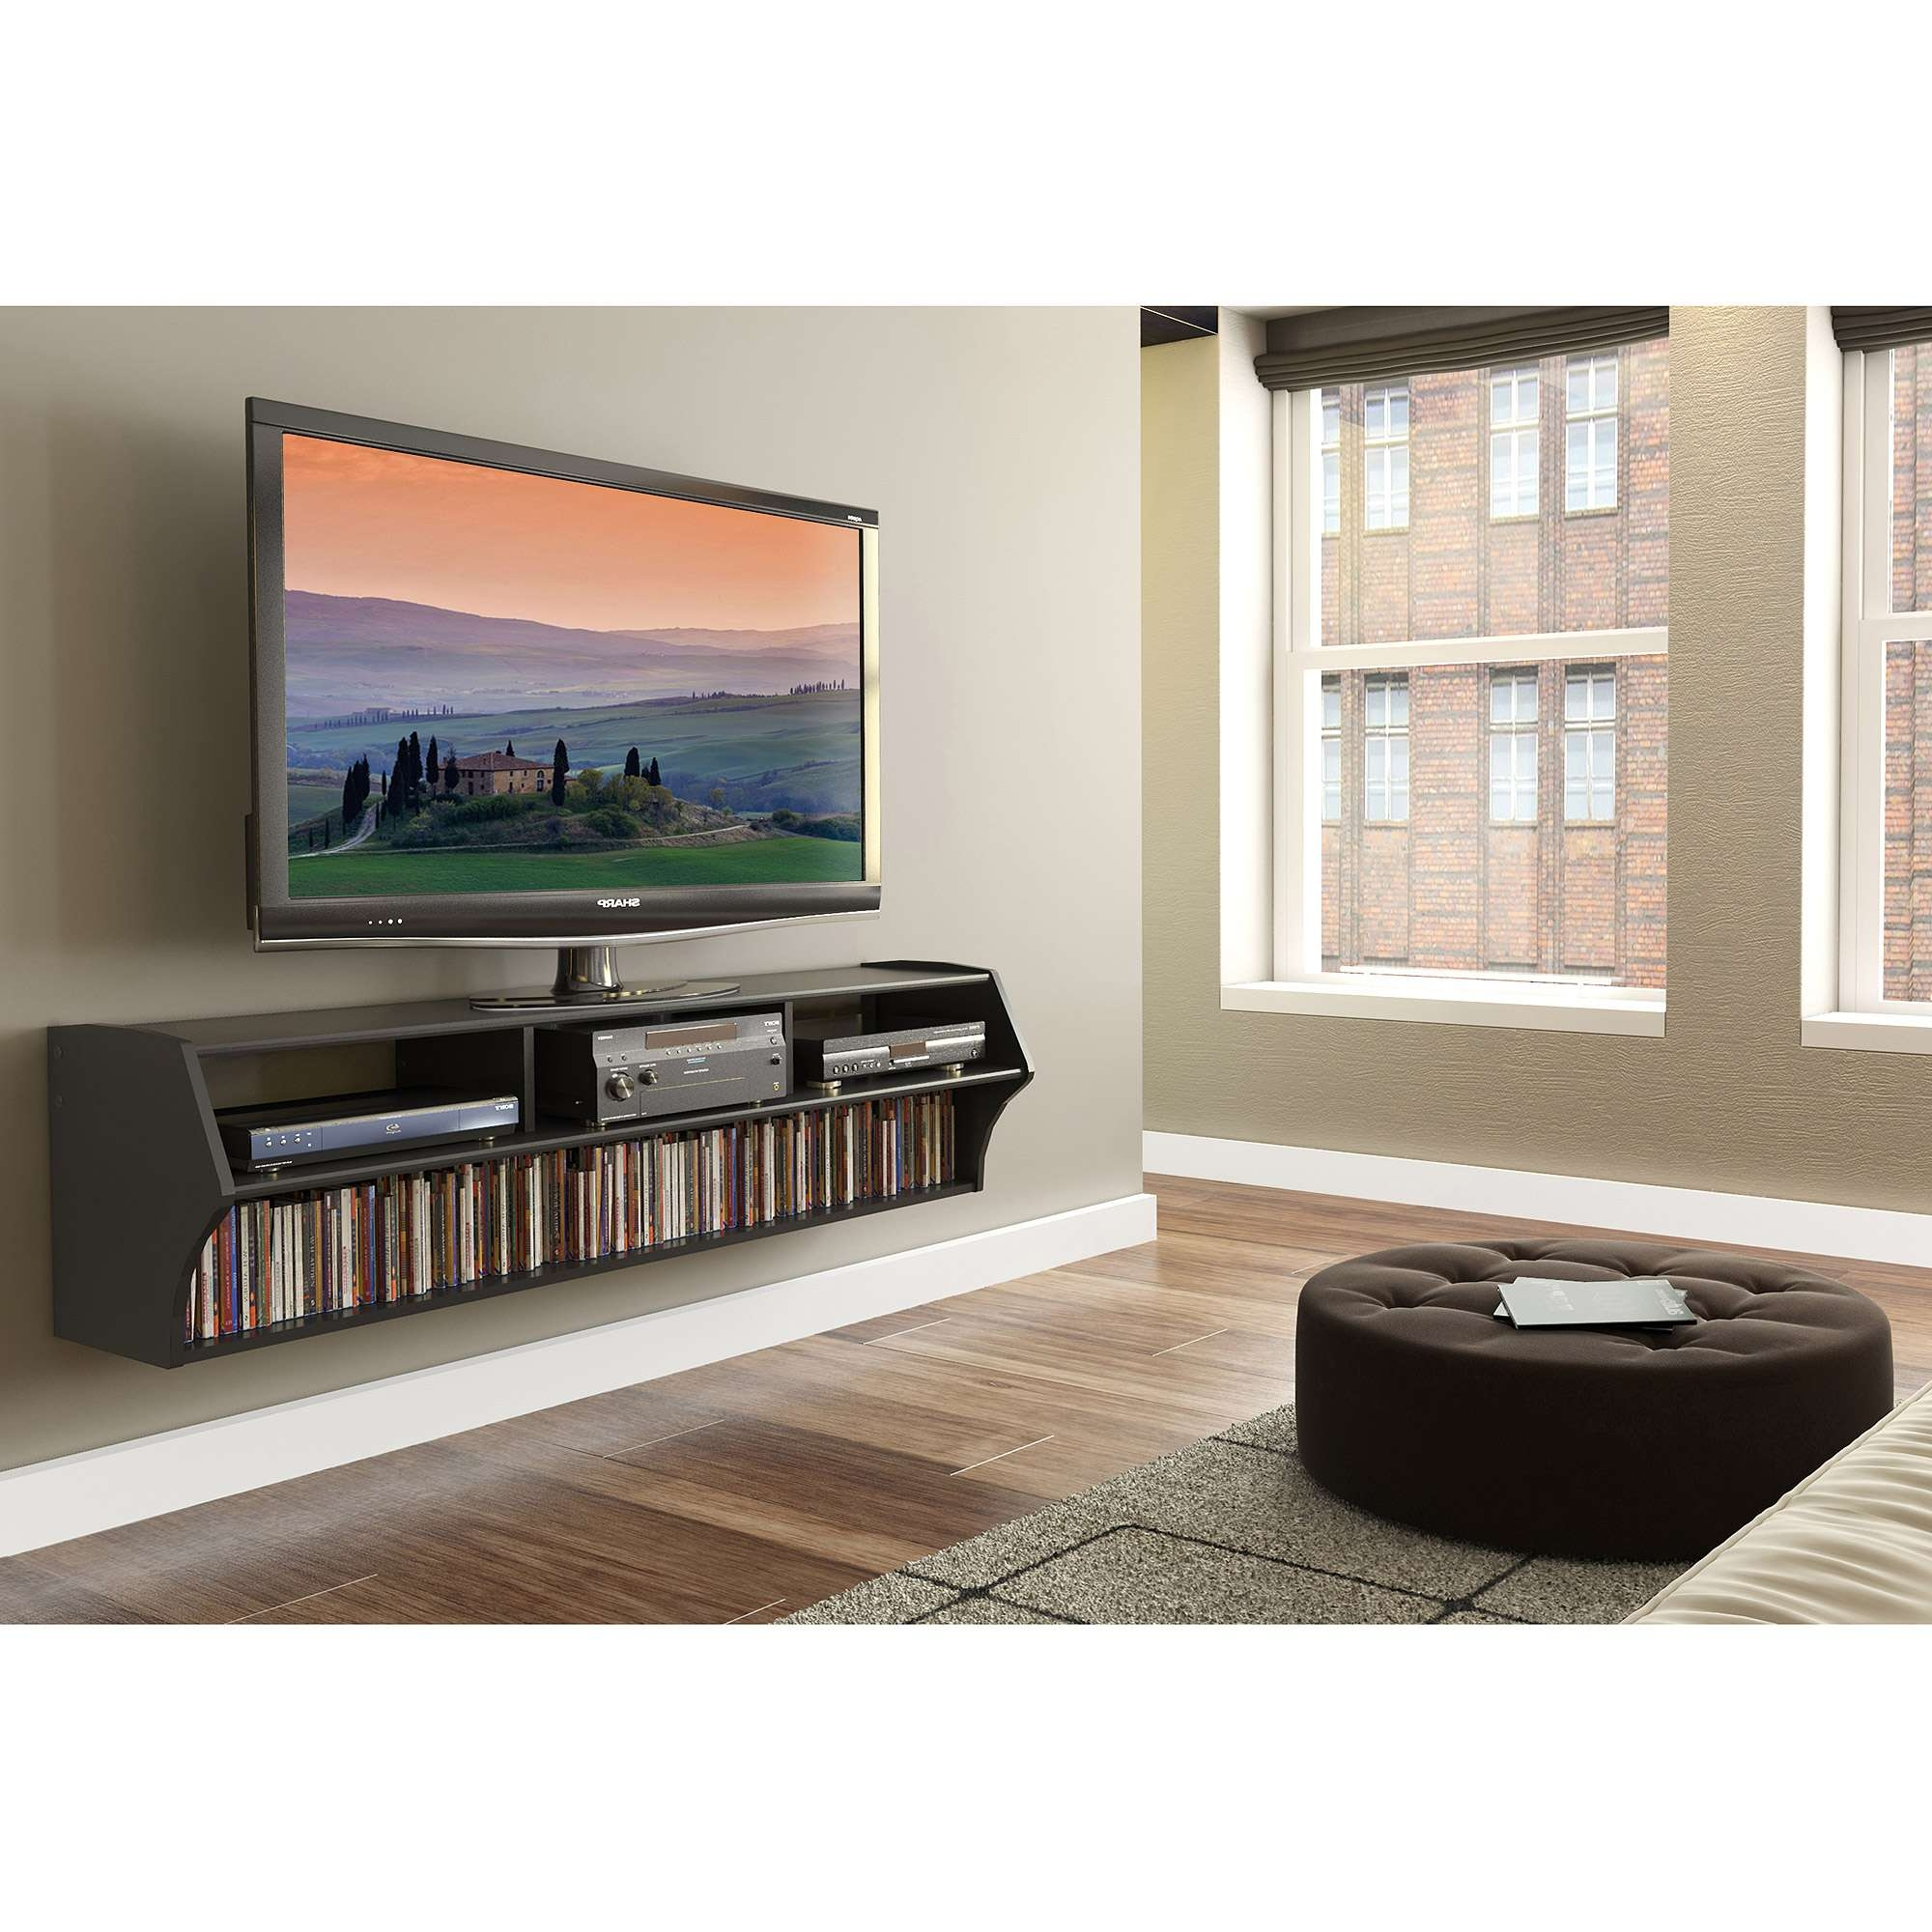 Coffee Table : Fabulous Tv Stand With Matching End Tables Fire In Tv Cabinets And Coffee Table Sets (View 19 of 20)